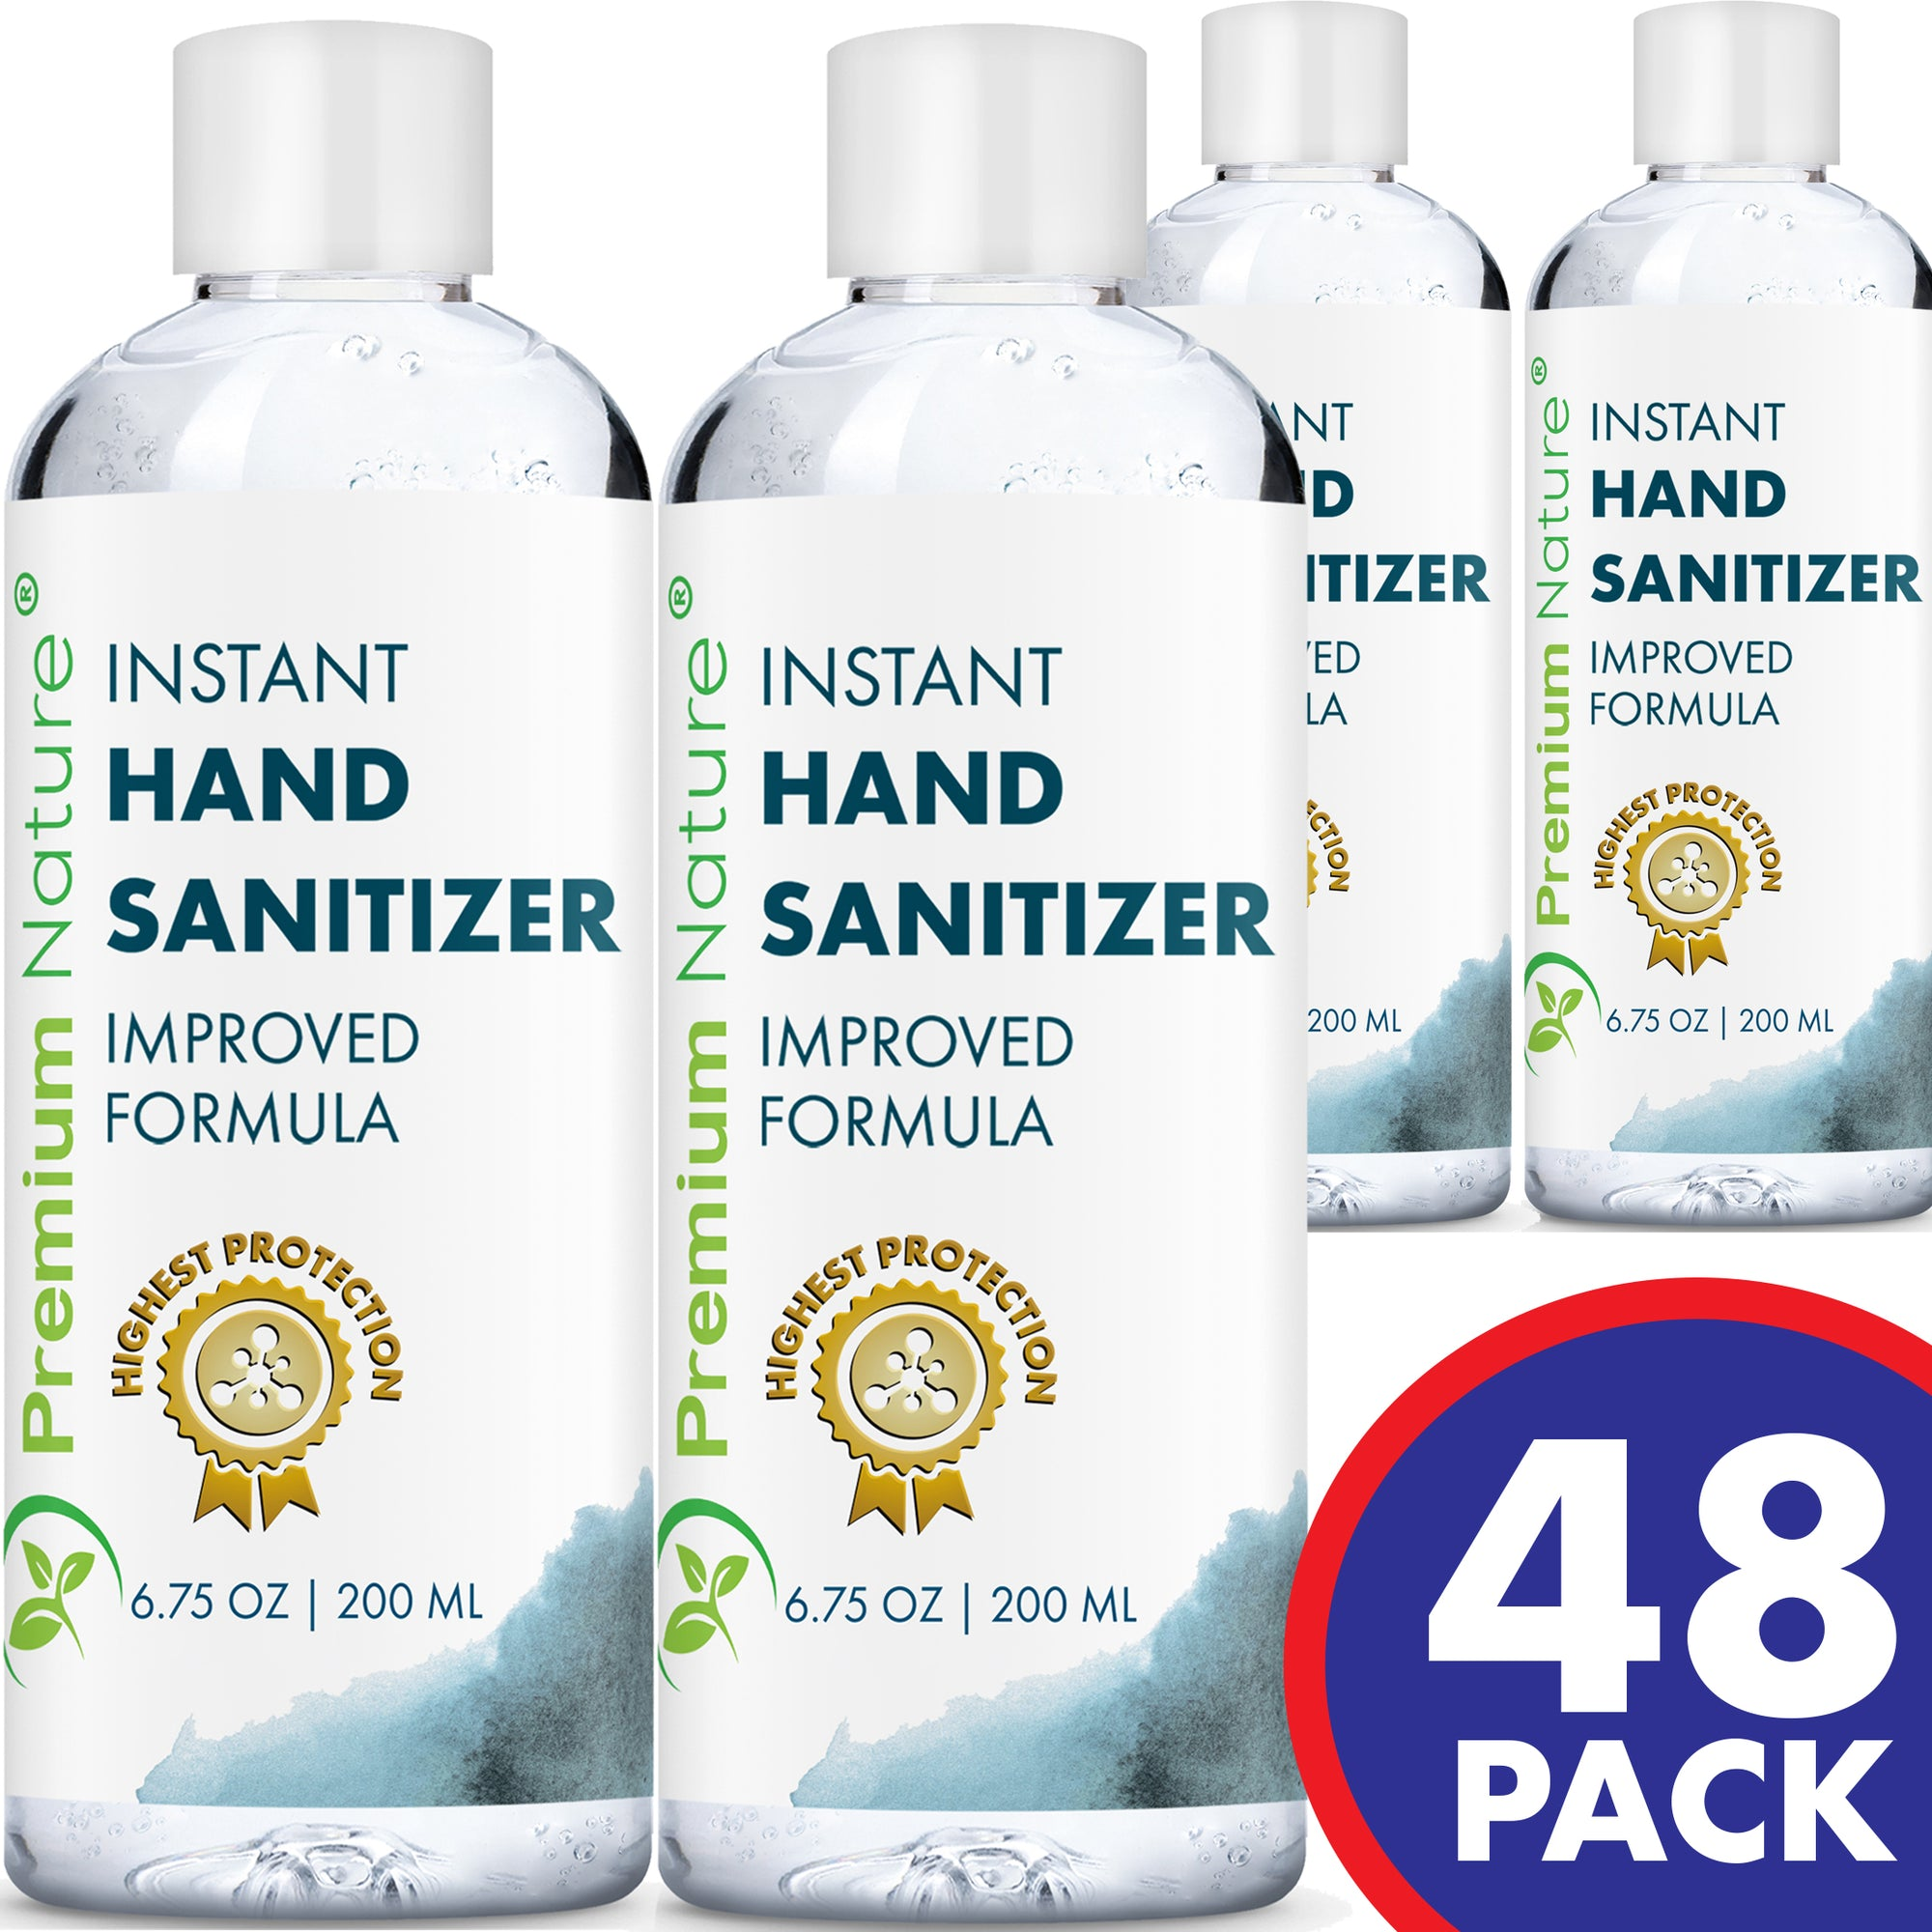 48 Pack Hand Sanitizer Gel Natural Advanced KILLS 99% OF GERMS MADE IN USA 48 x 6.75 OZ/ 200 ML